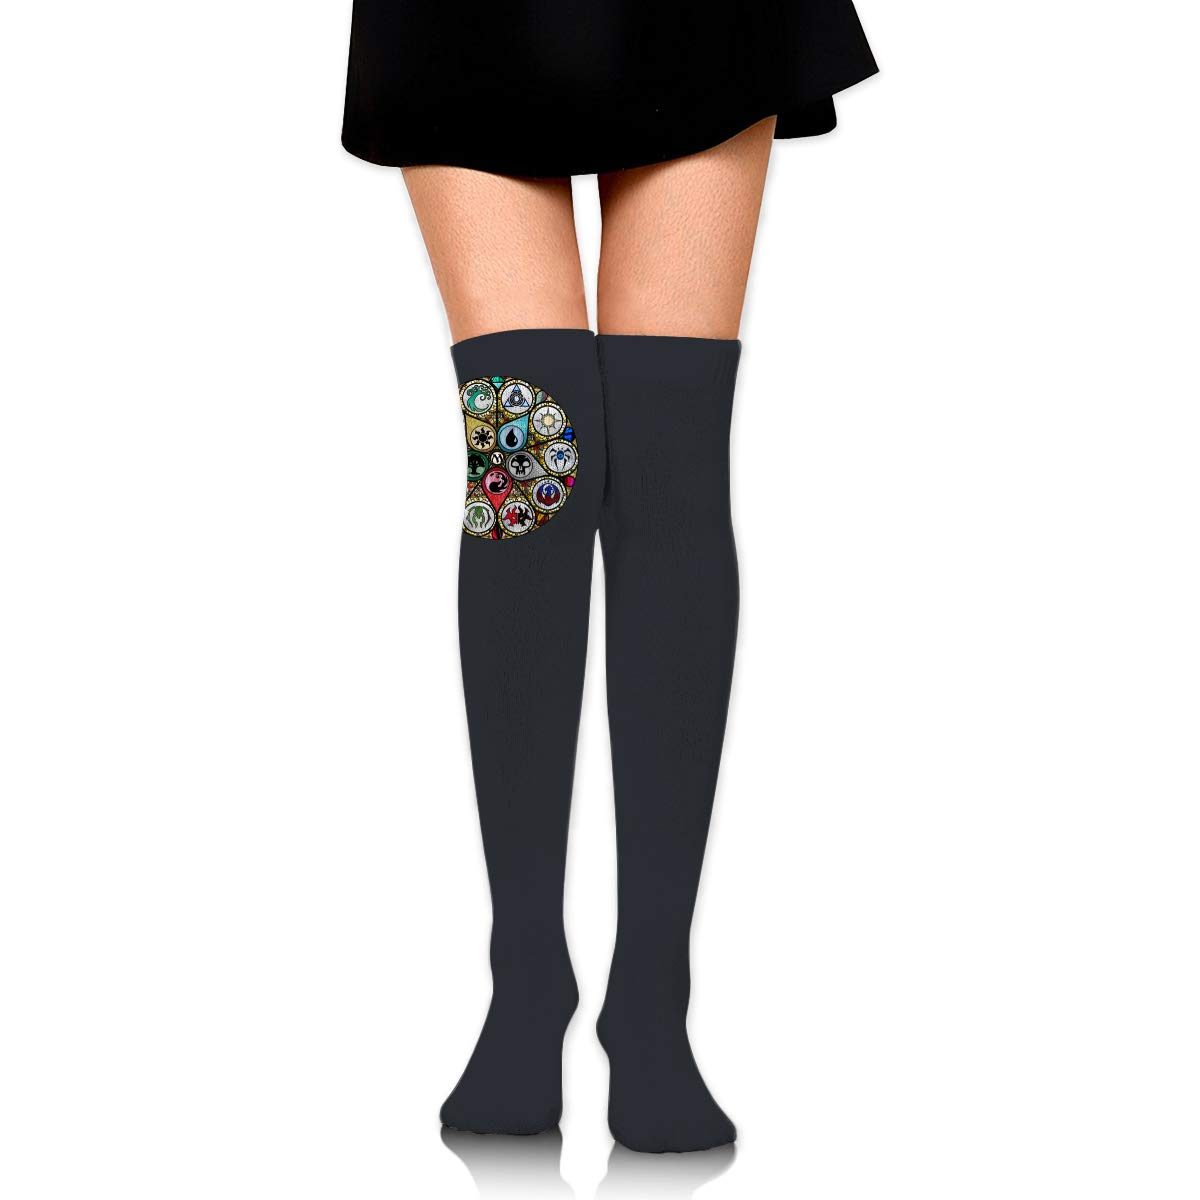 MTG Stained Glass Long Tight Thigh High Socks Over The Knee High Boot Stockings Leg Warmers